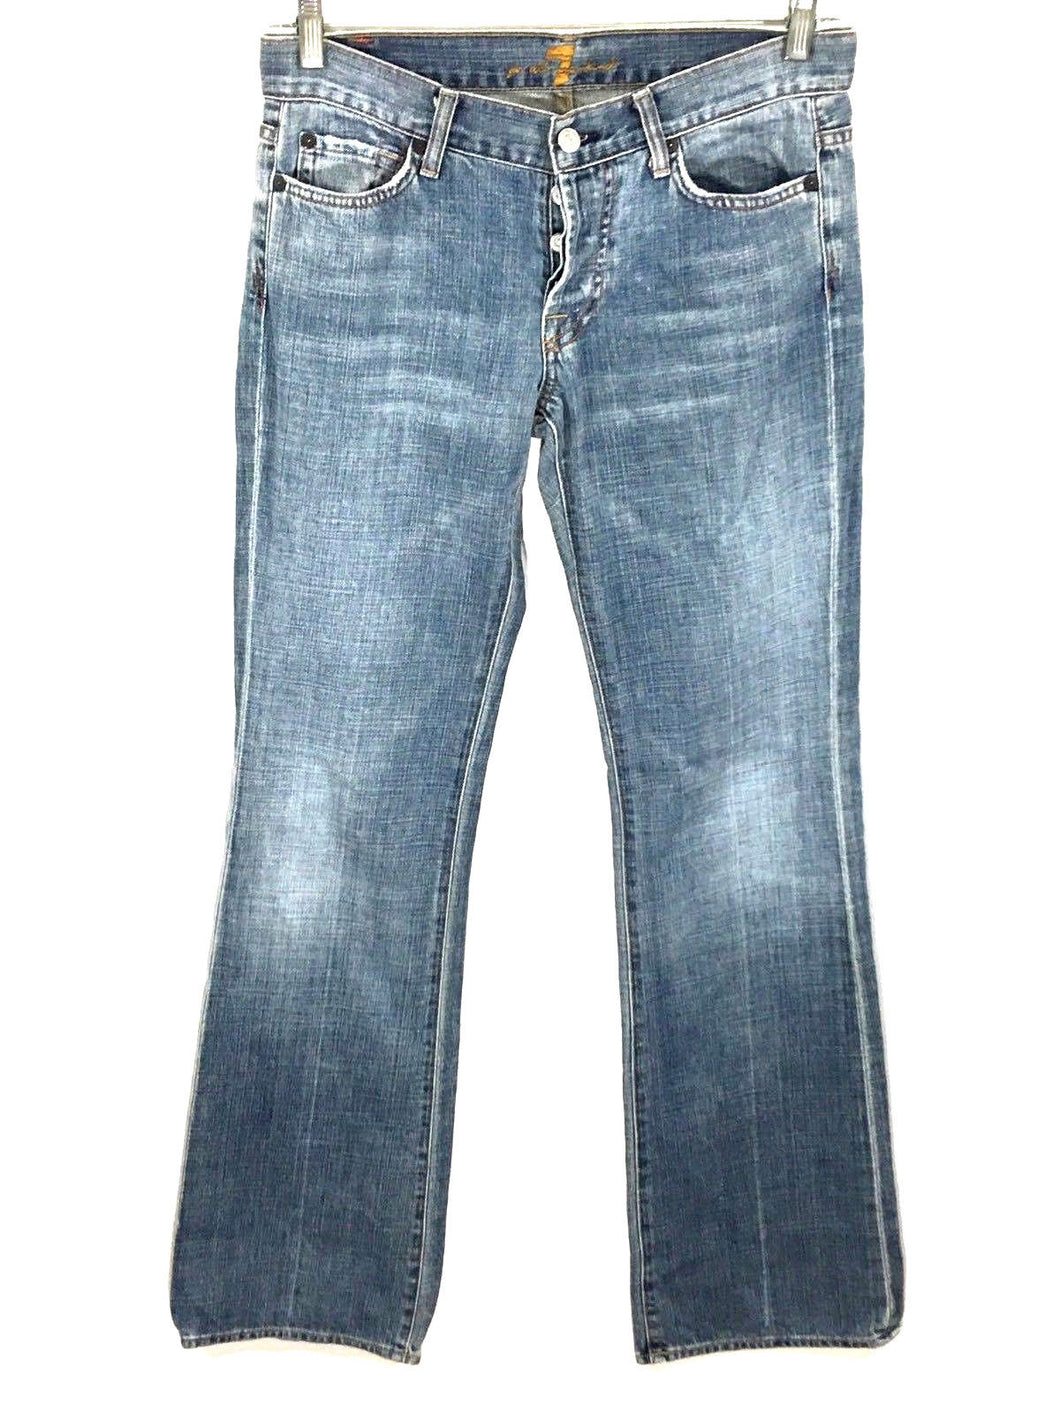 7 For All Mankind Boy Cut Button Fly Light Wash Jeans Women's 29 Actual 30 x 34 - Preowned - FunkyCrap Boutique